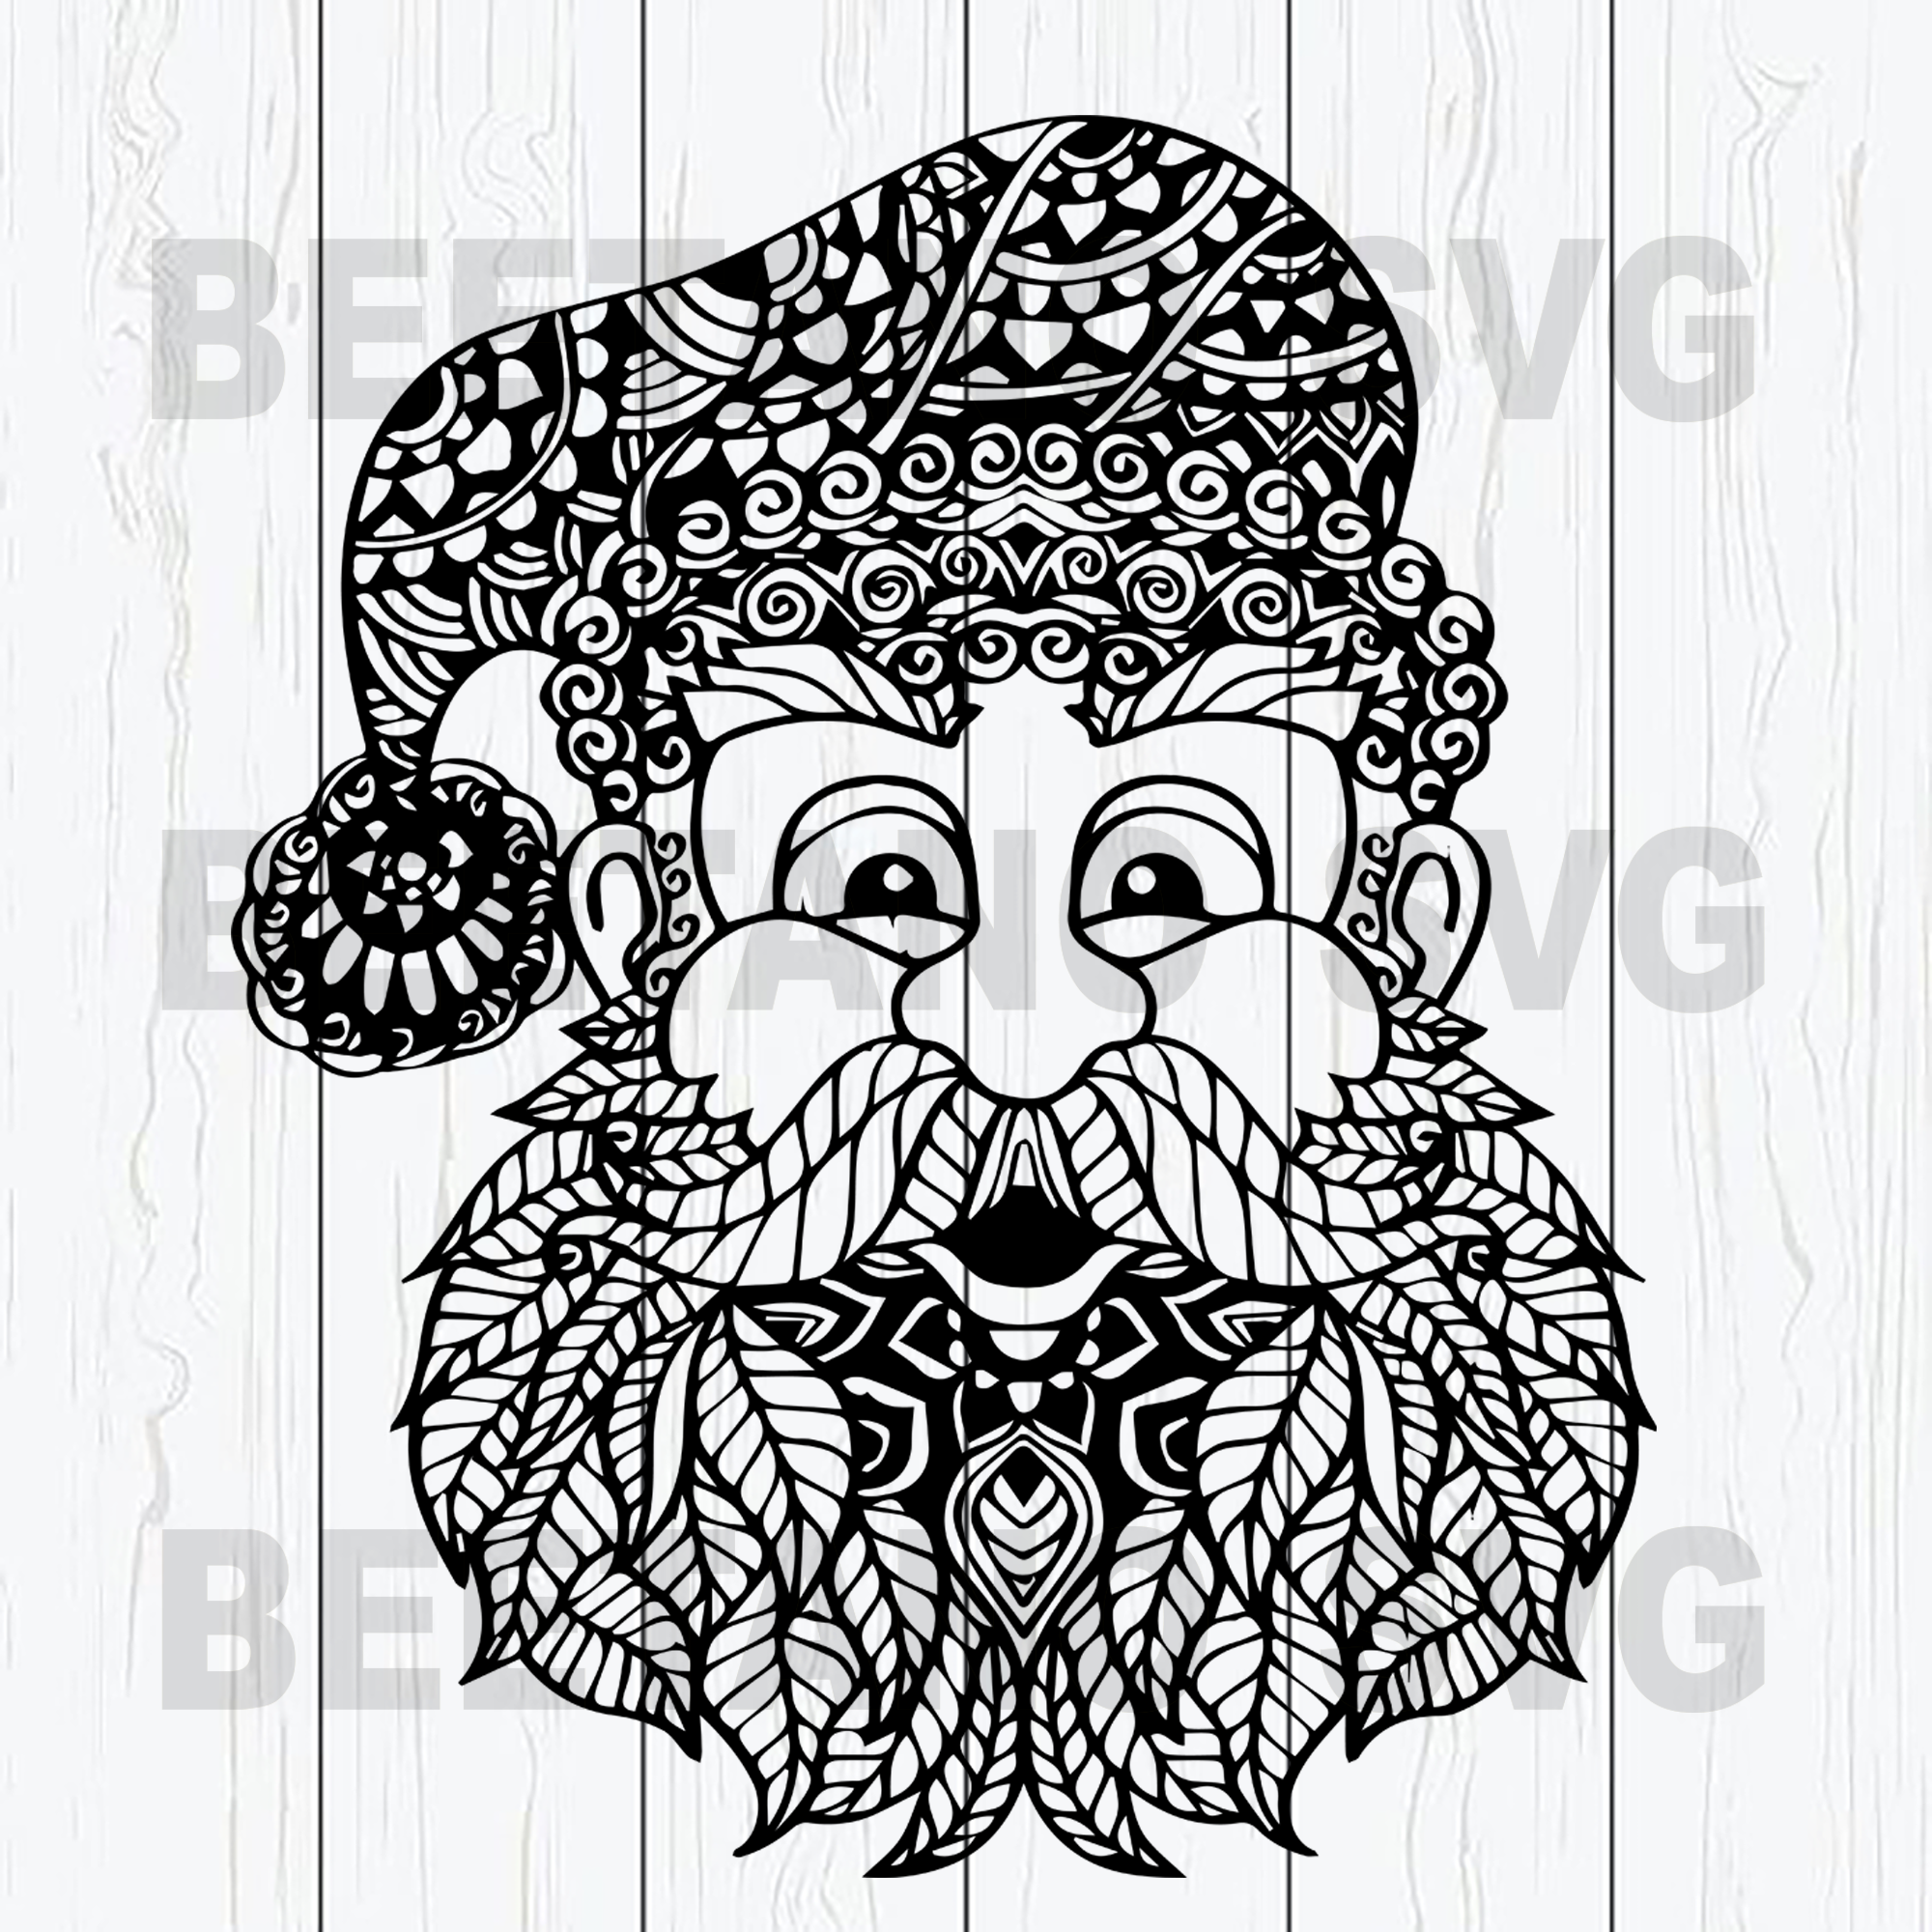 Mandala Santa Claus Svg Mandala Santa Cutting Files For Cricut Svg Beetanosvg Scalable Vector Graphics